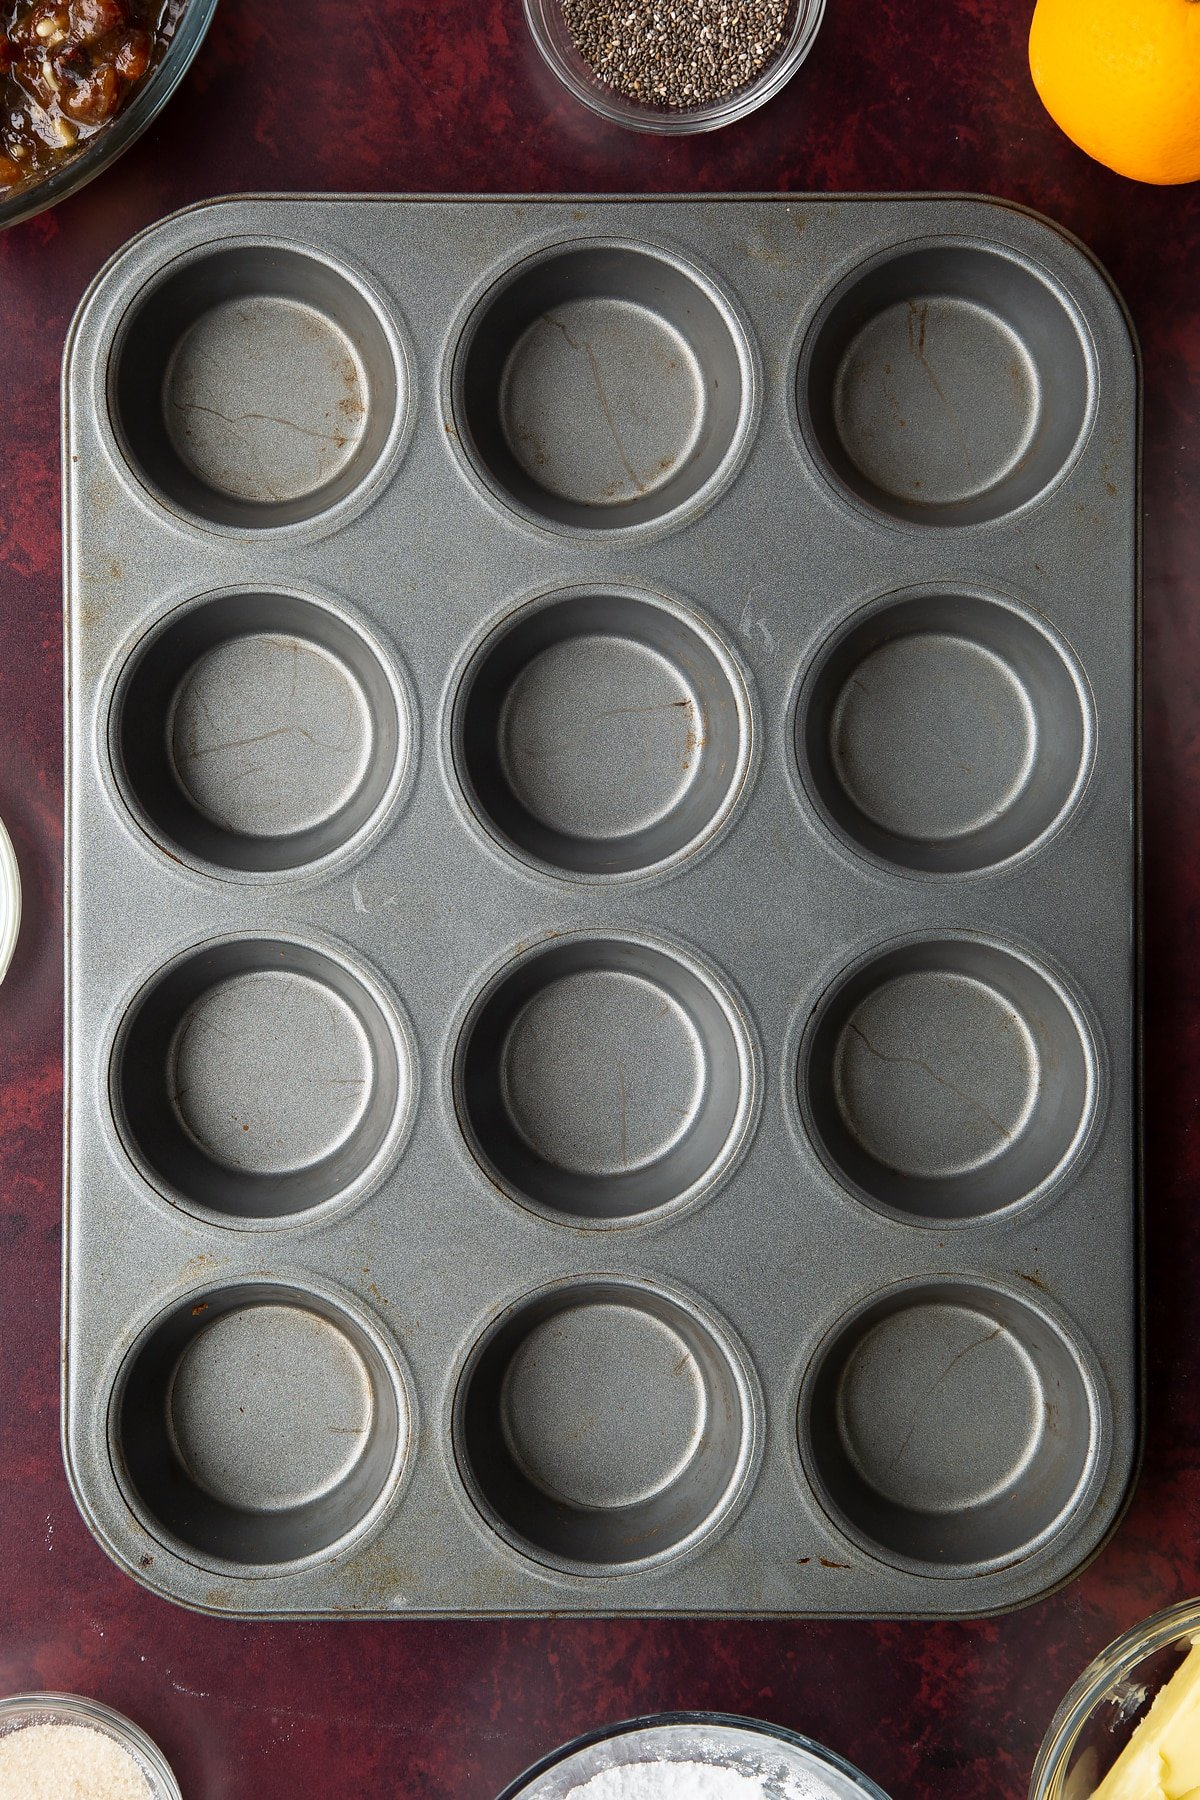 Metal 12-hole muffin tray.